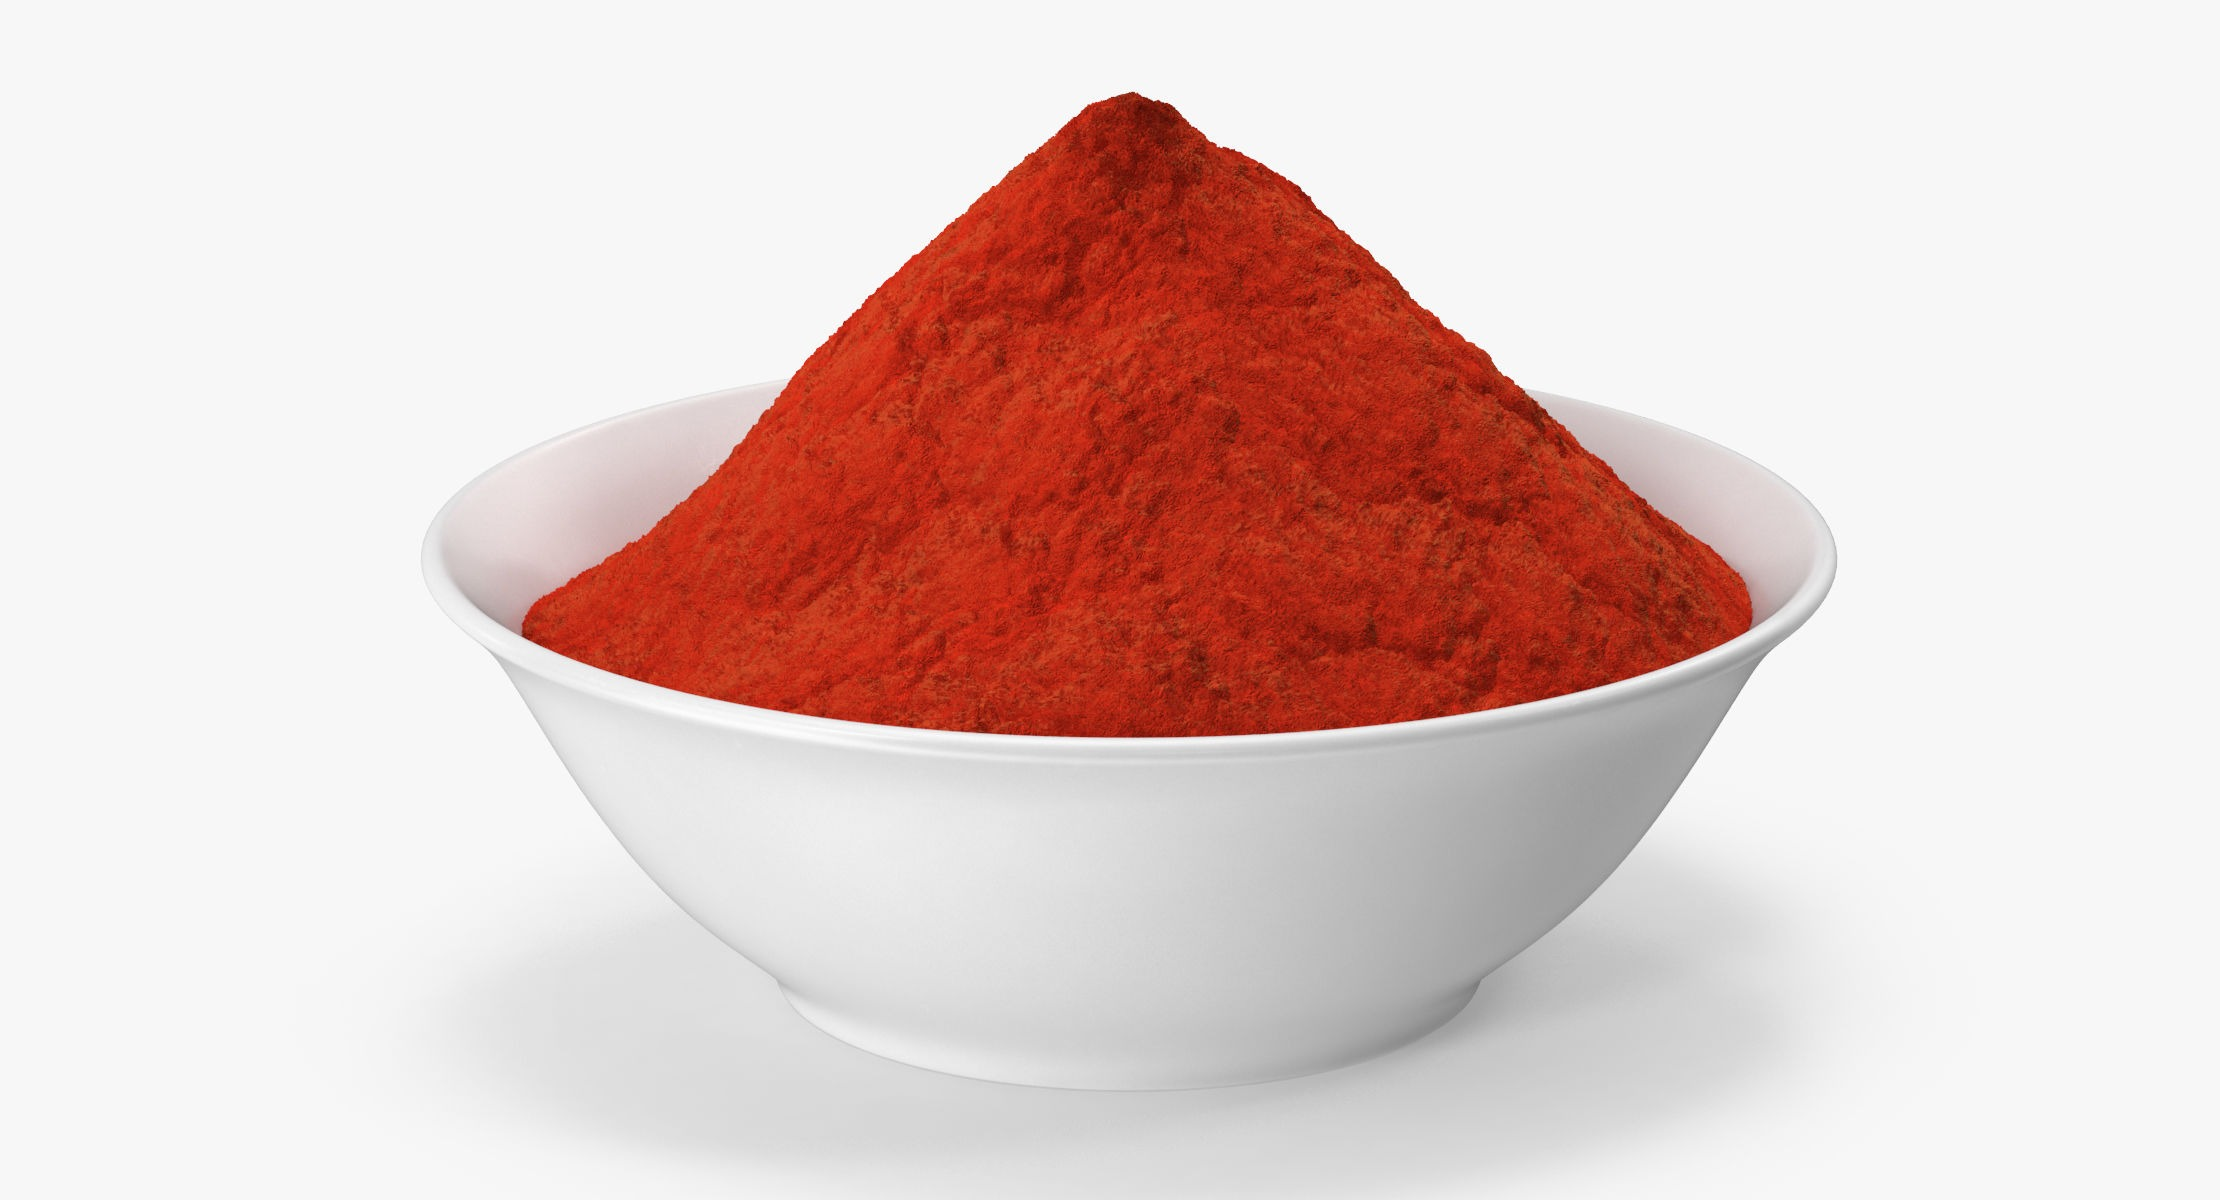 Bowl of Red Curry Powder - reel 1